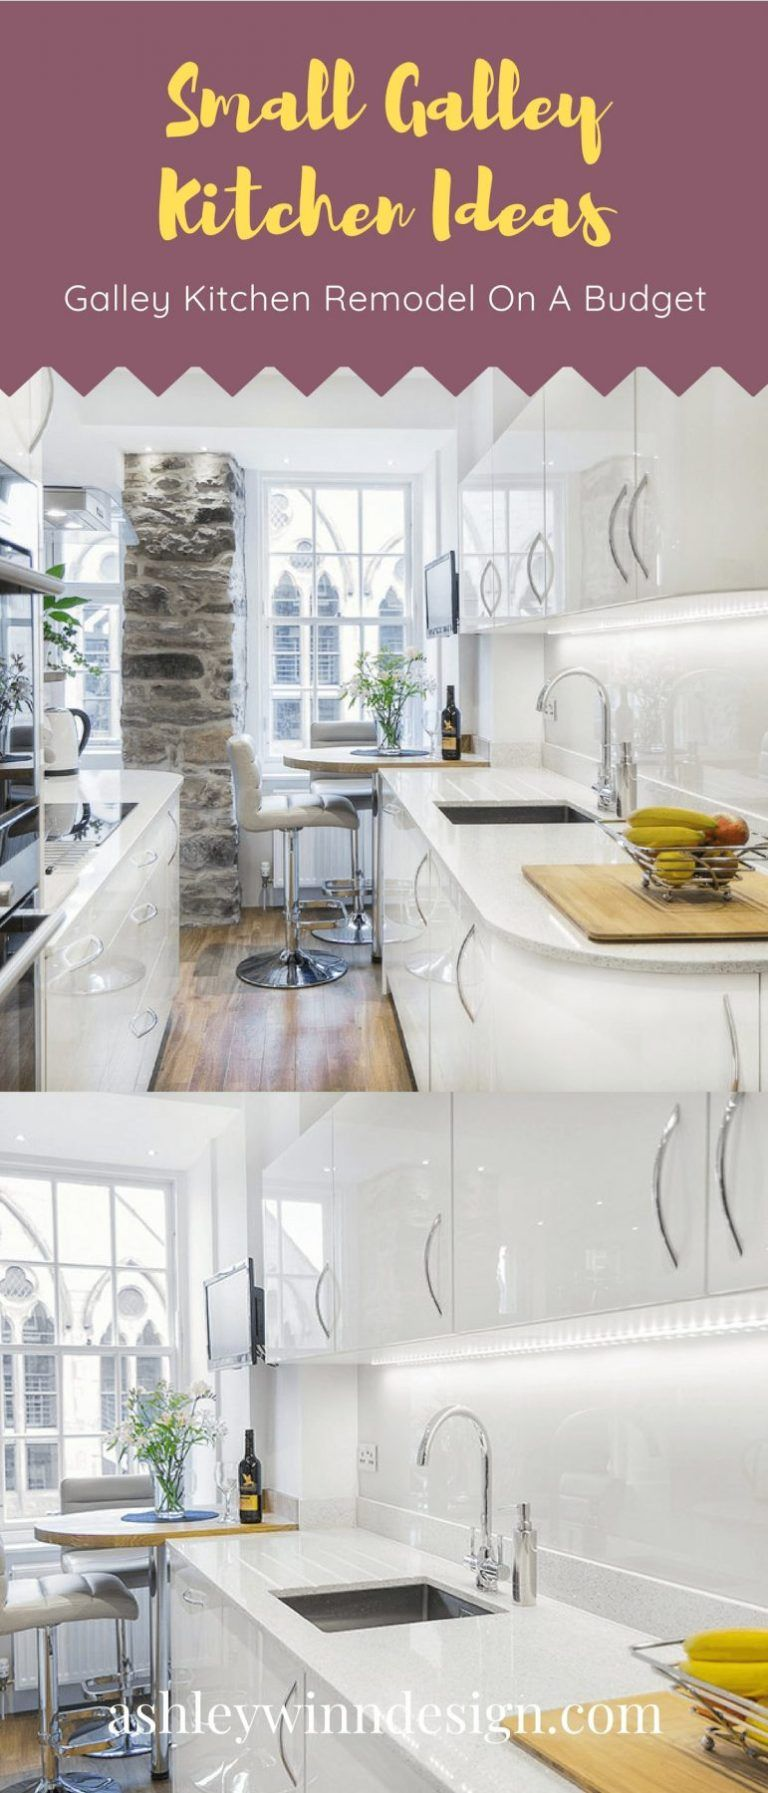 29 Awesome Galley Kitchen Remodel Ideas (A Guide to Makeover Your Kitchen) #whitegalleykitchens